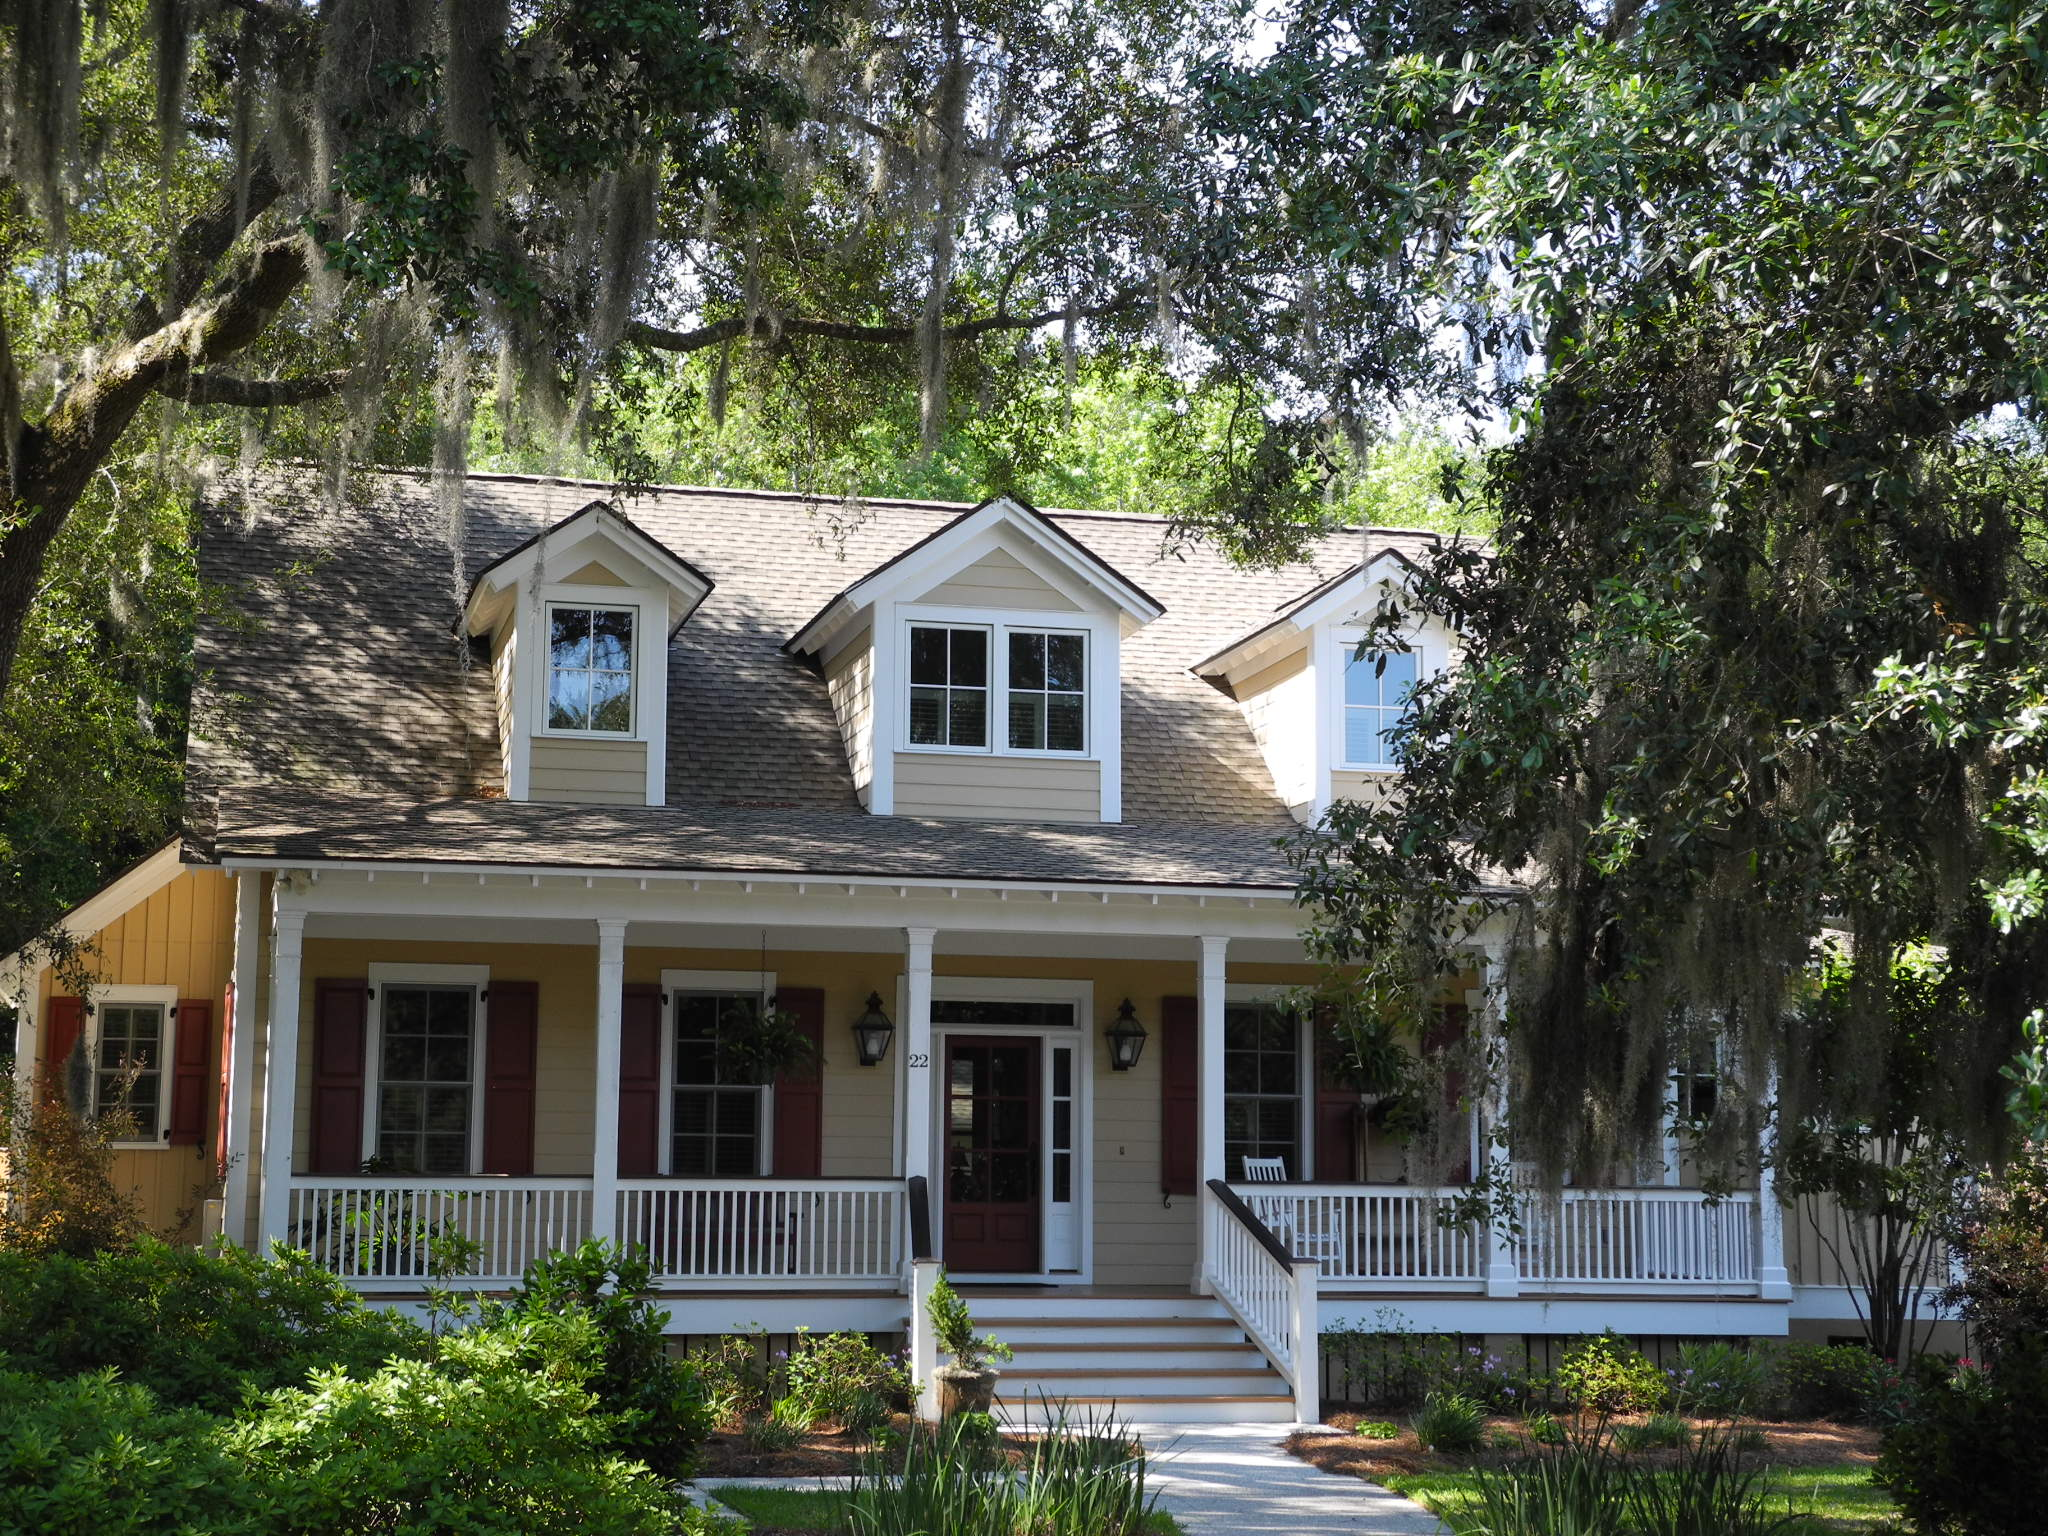 Beaufort south carolina real estate named happiest Cottage houses